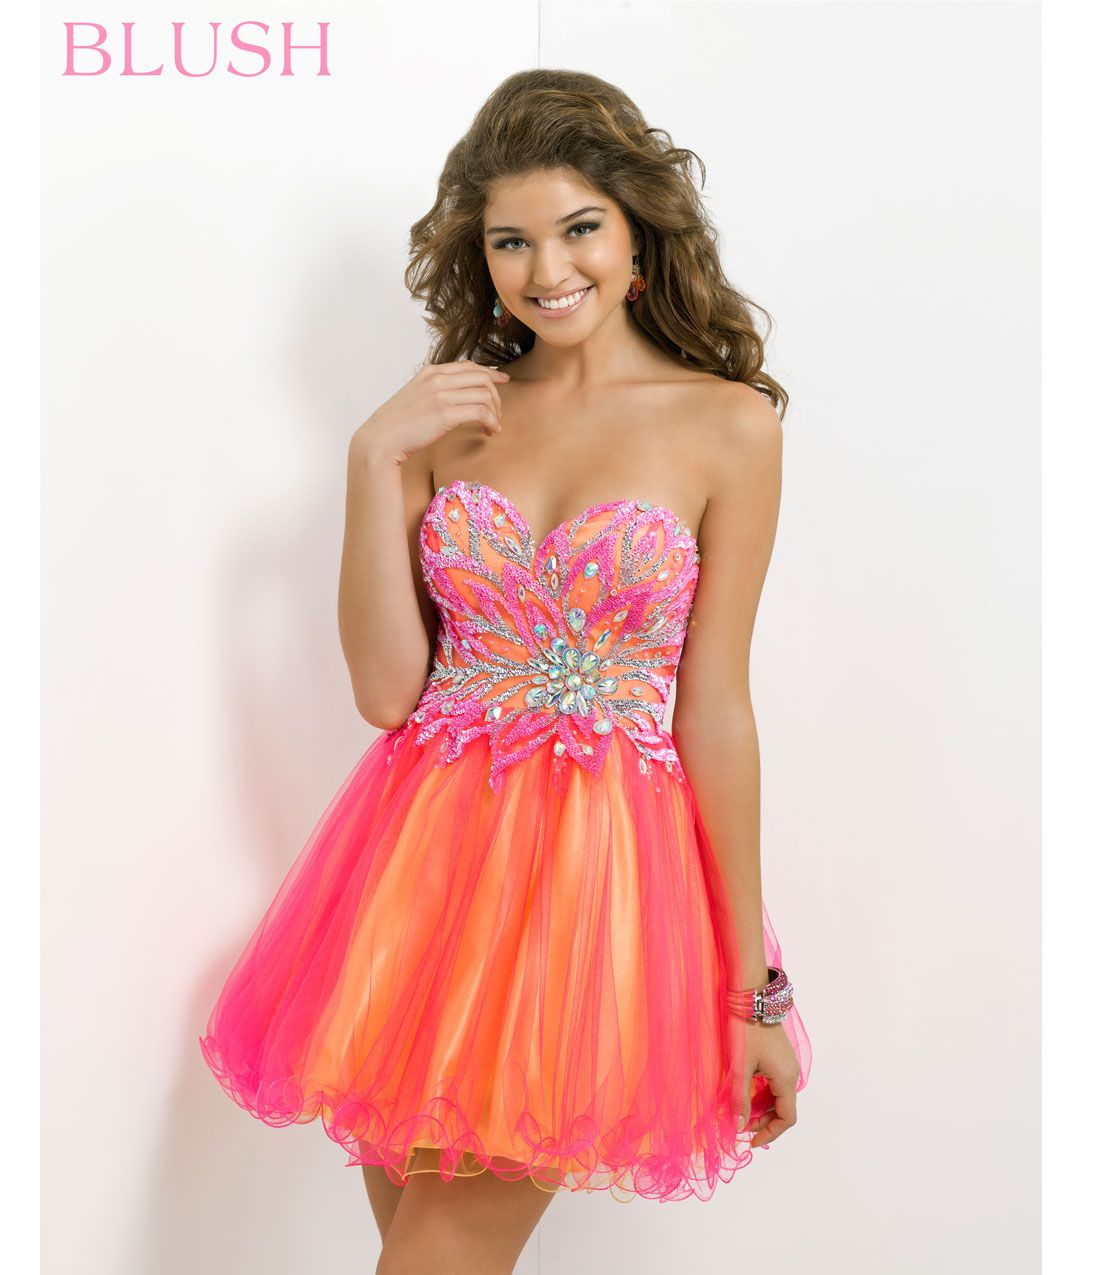 Blush 2014 prom dresses hot pink yellow strapless for Pink homecoming dresses